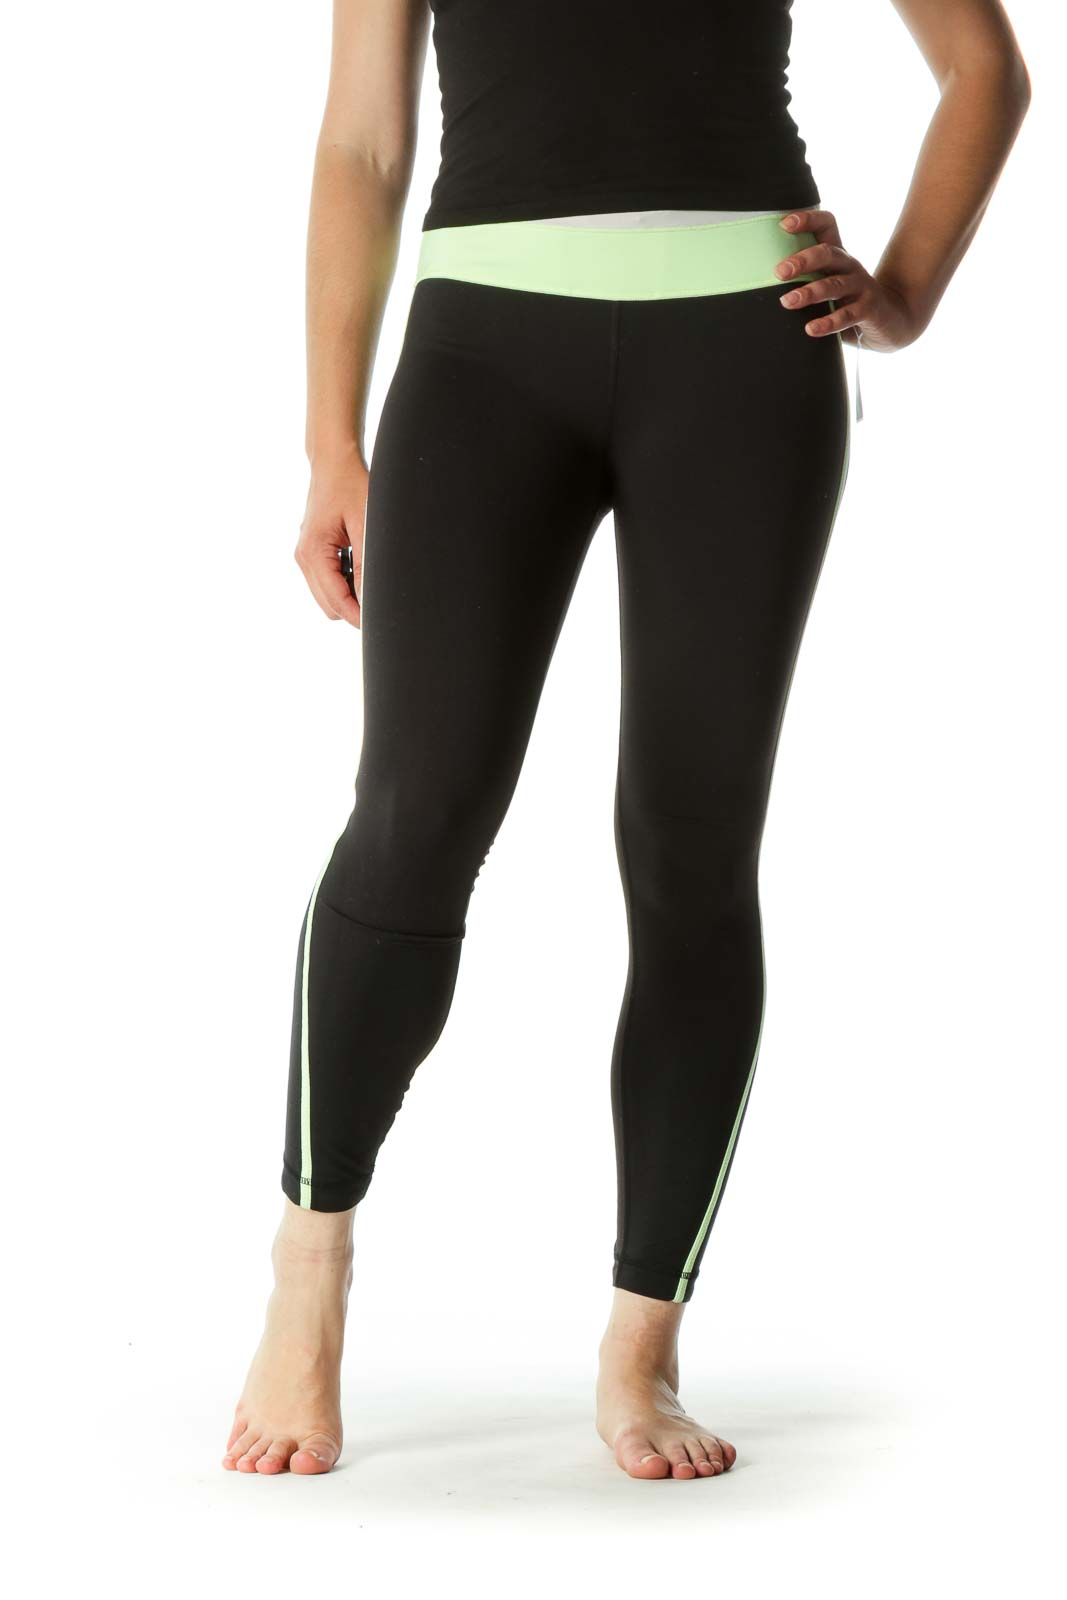 Gray Green Black Leg Details Stretch Active Pants